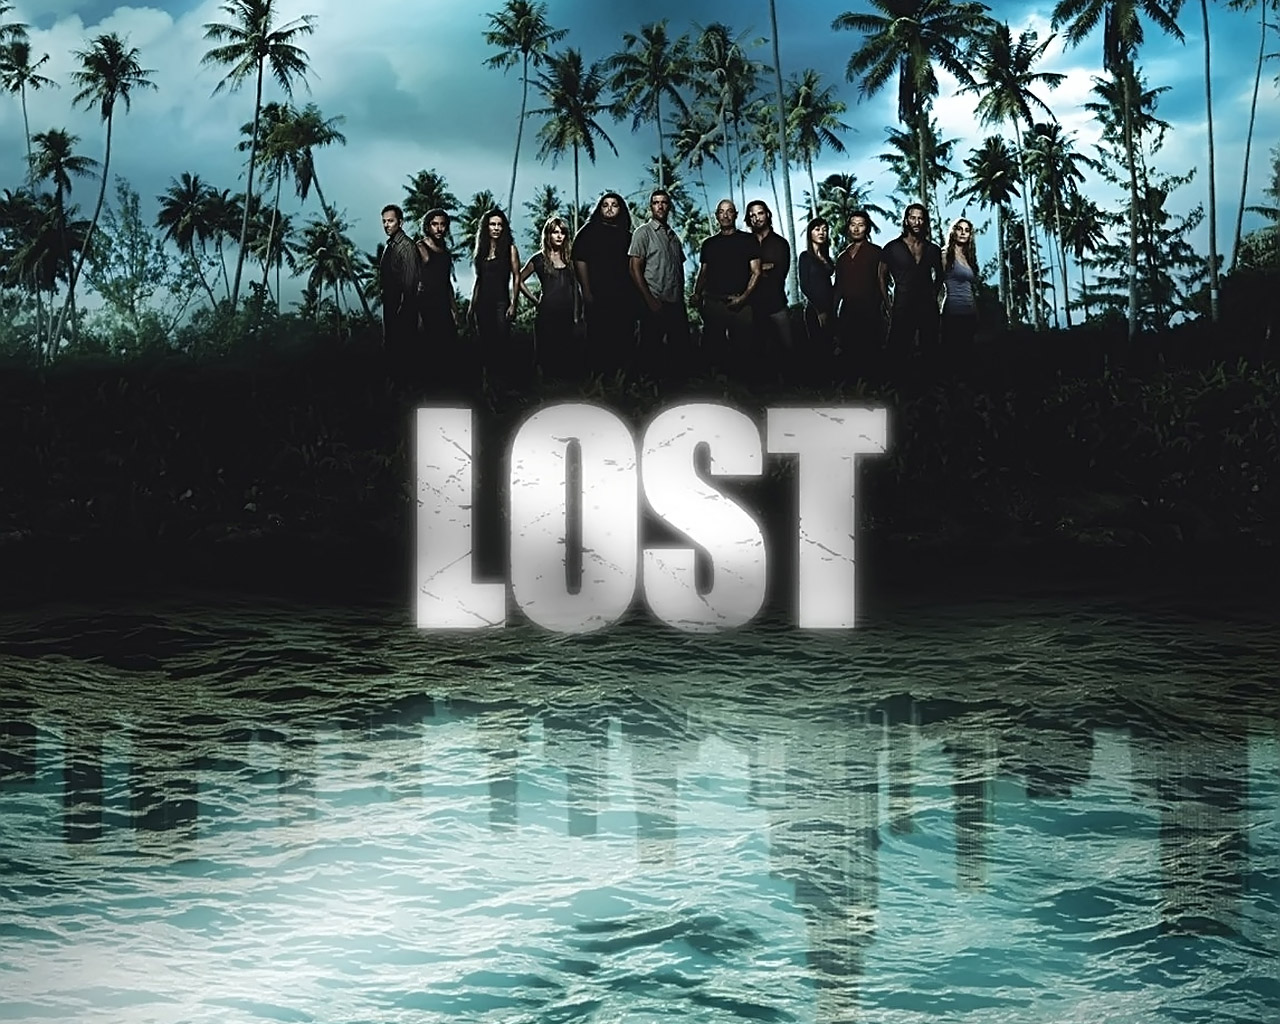 Lost Season 4 Wallpaper обои